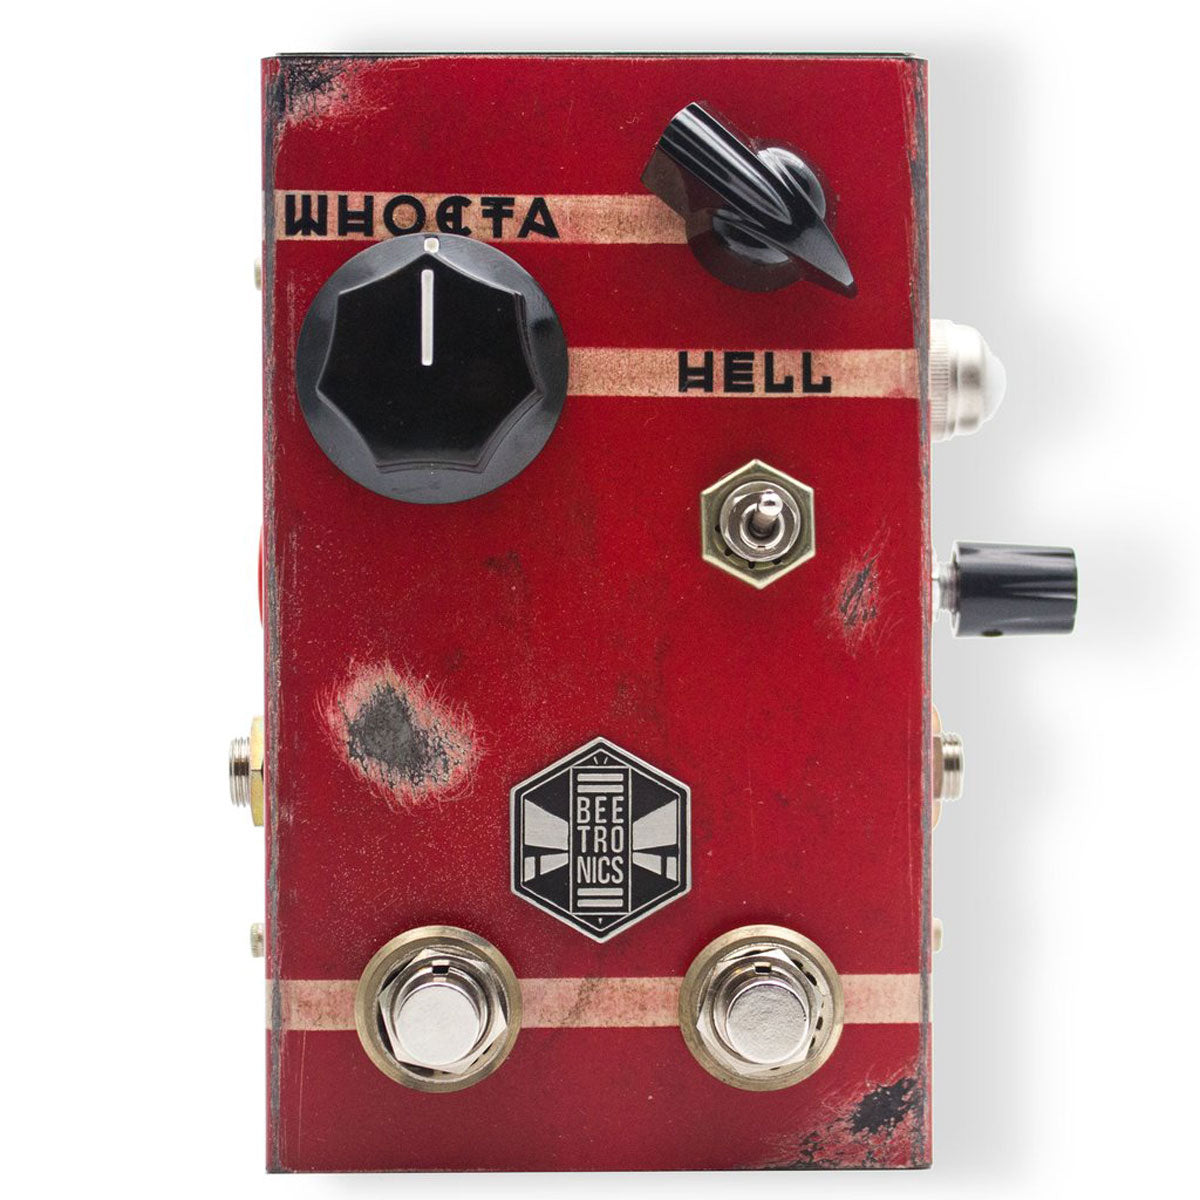 Beetronics Whoctahell - Low Octave Fuzz | Lucky Fret Music Co.